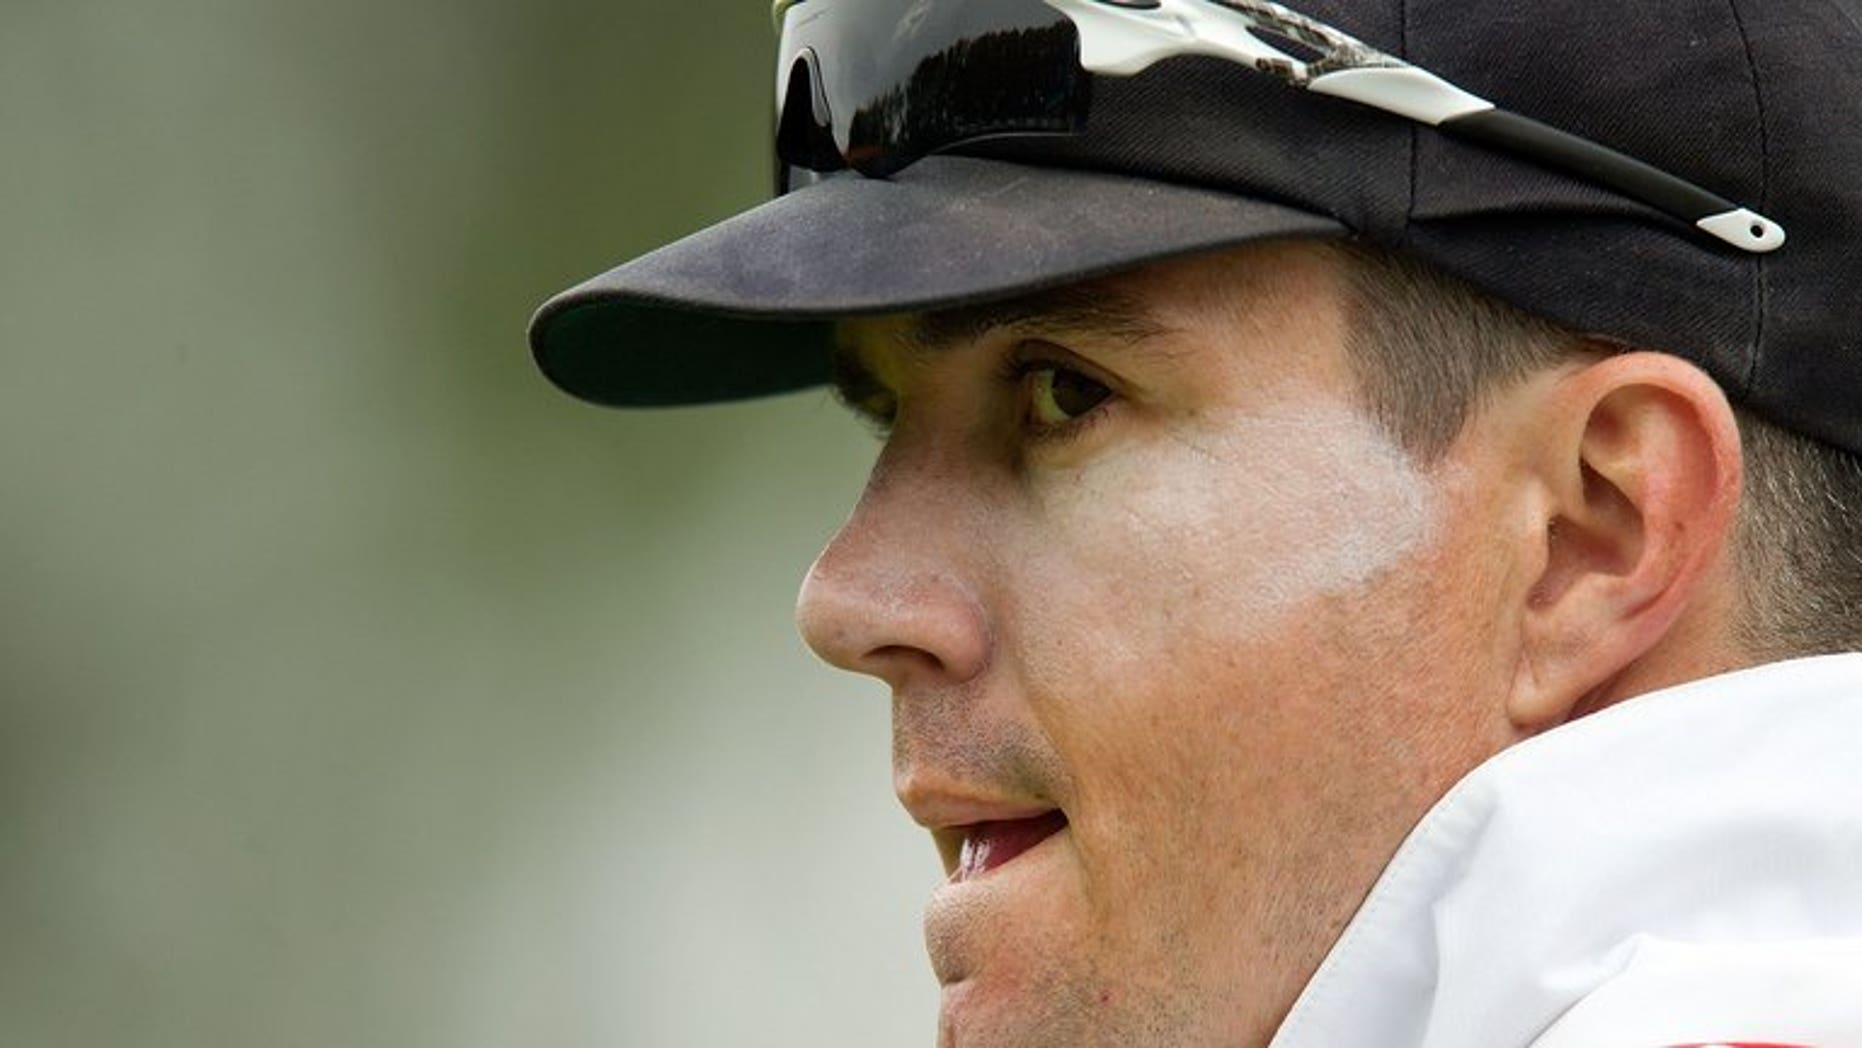 England's Kevin Pietersen fields at the University Oval park in Dunedin on March 8, 2013. Pietersen admitted Friday he'd made mistakes over the incident that saw him dropped by England on disciplinary grounds last season before he returned to the side.